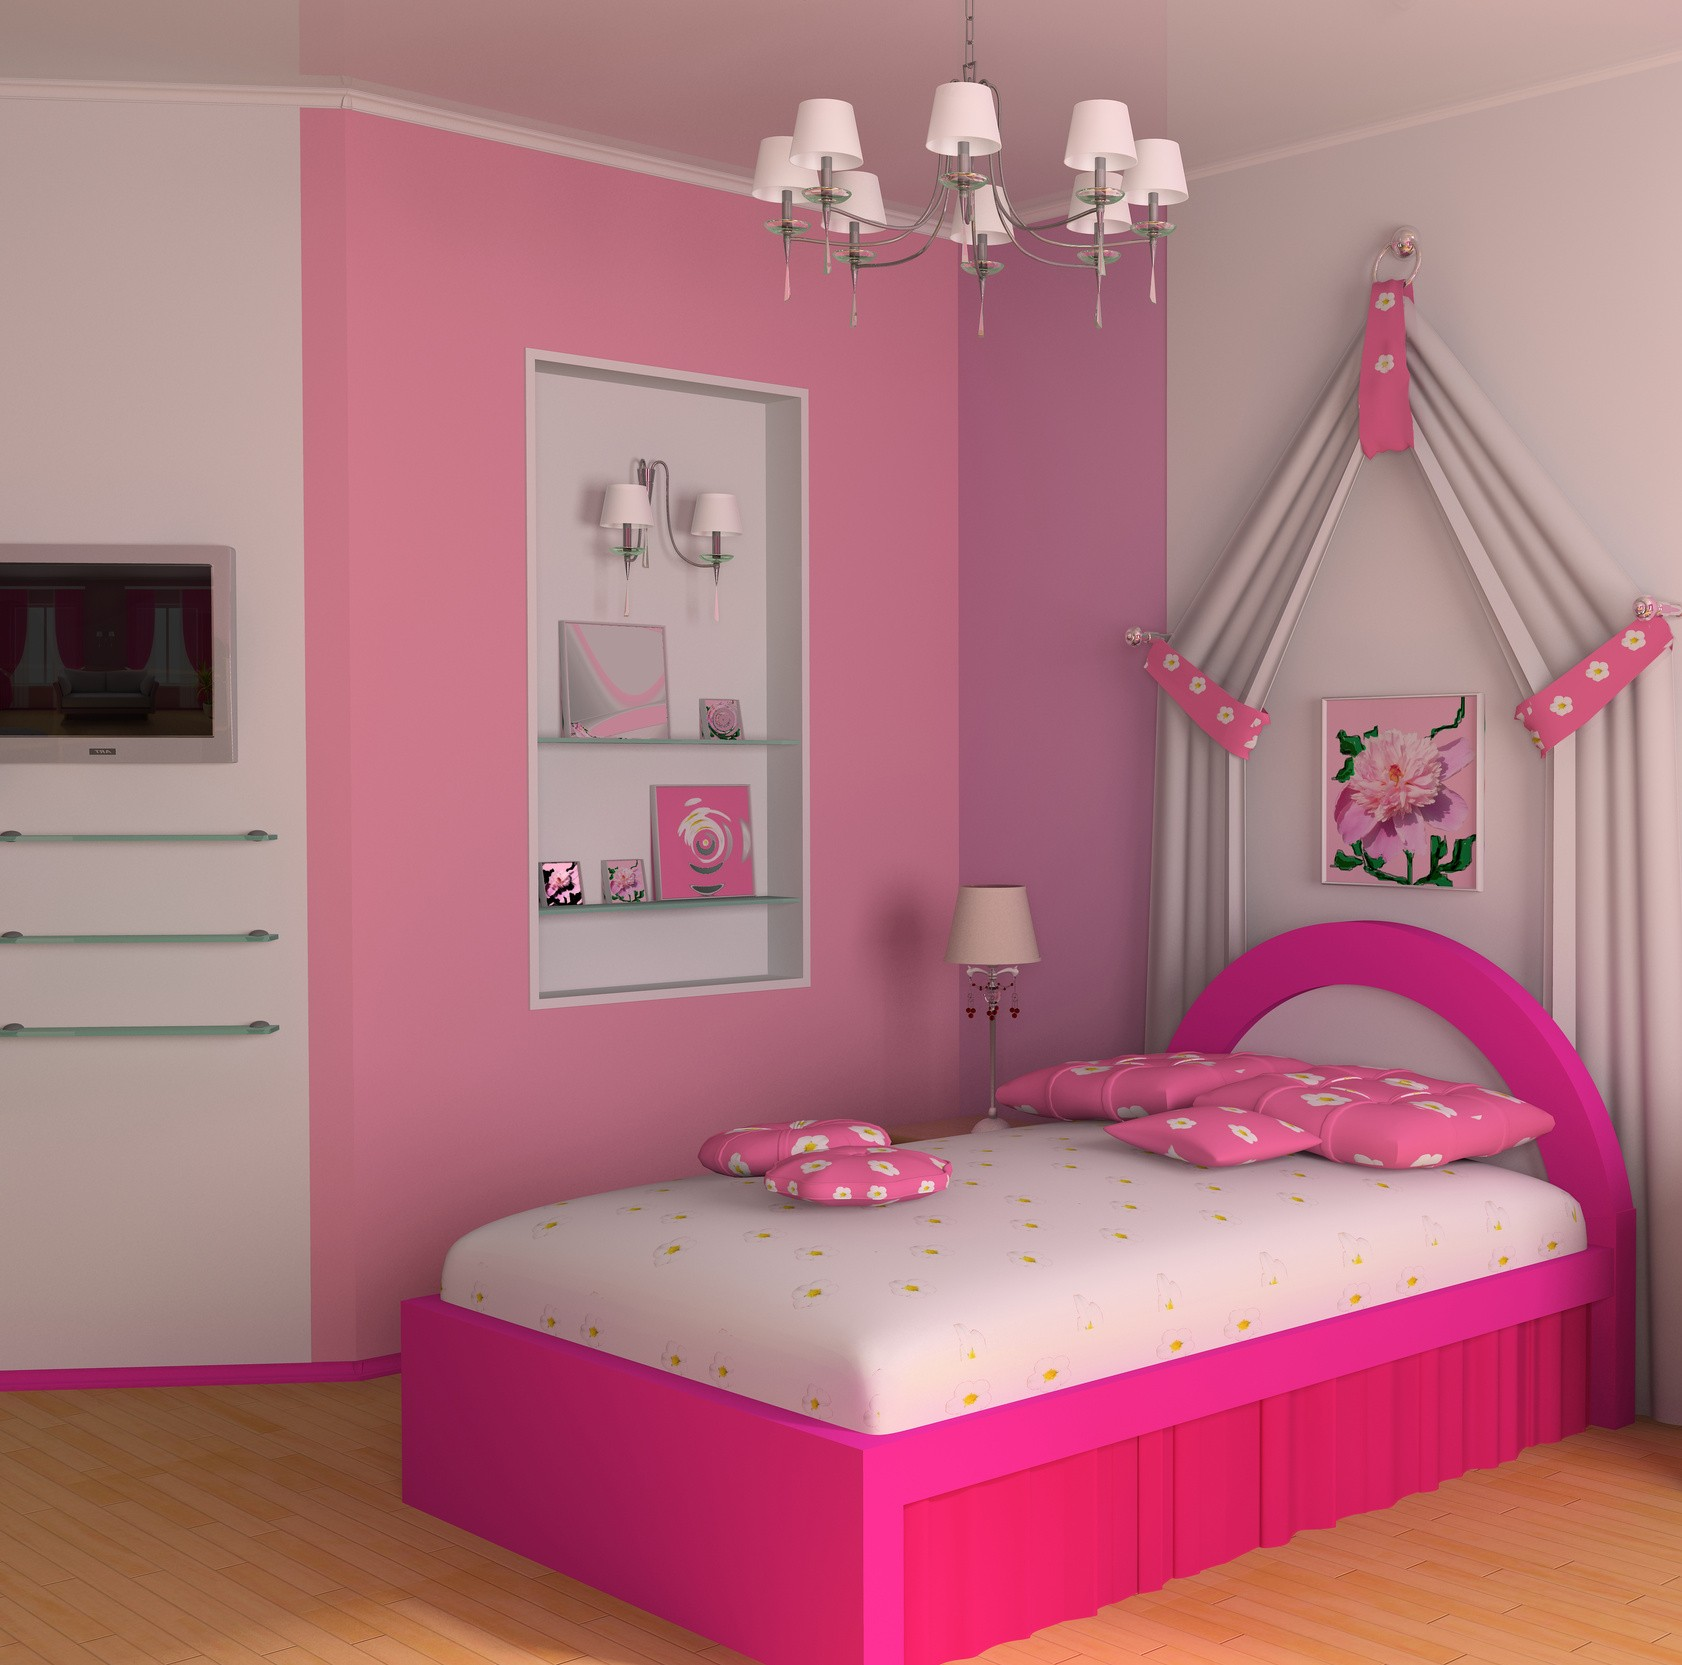 A teenage bedroom Bedroom accessories. Bedroom accessories for teenage girls   large and beautiful photos